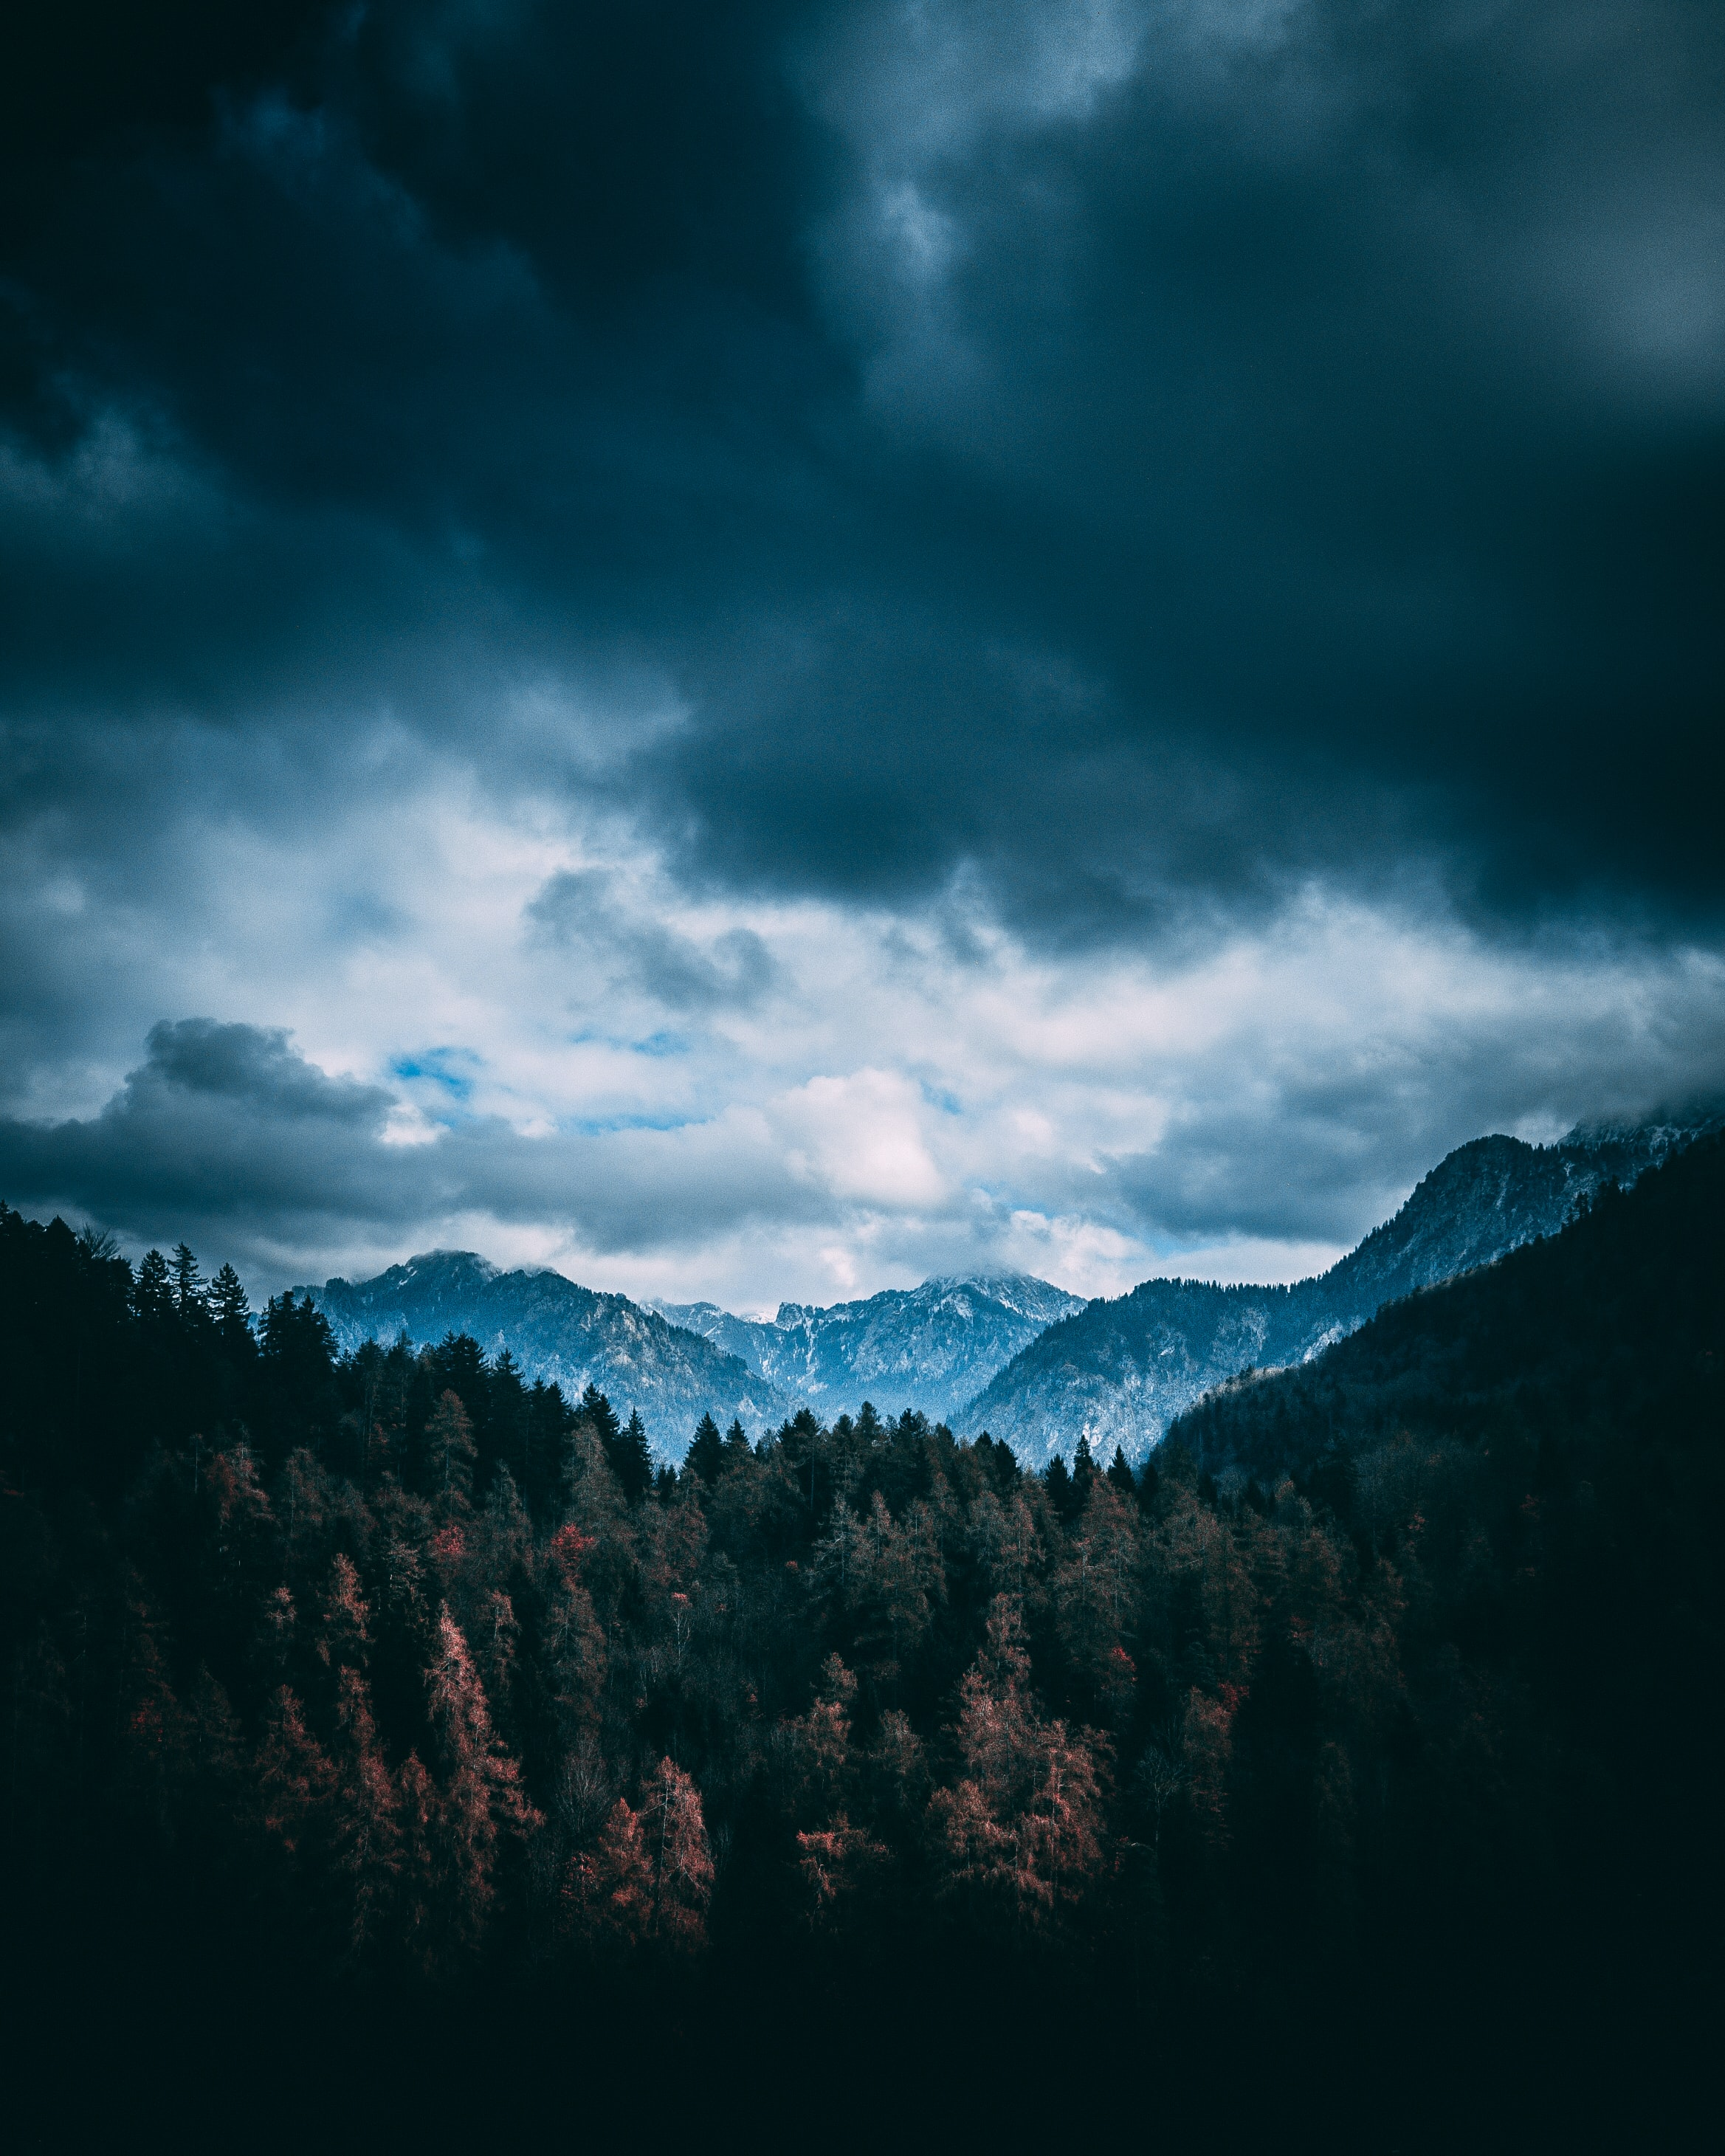 forest and mountains under gray clouds